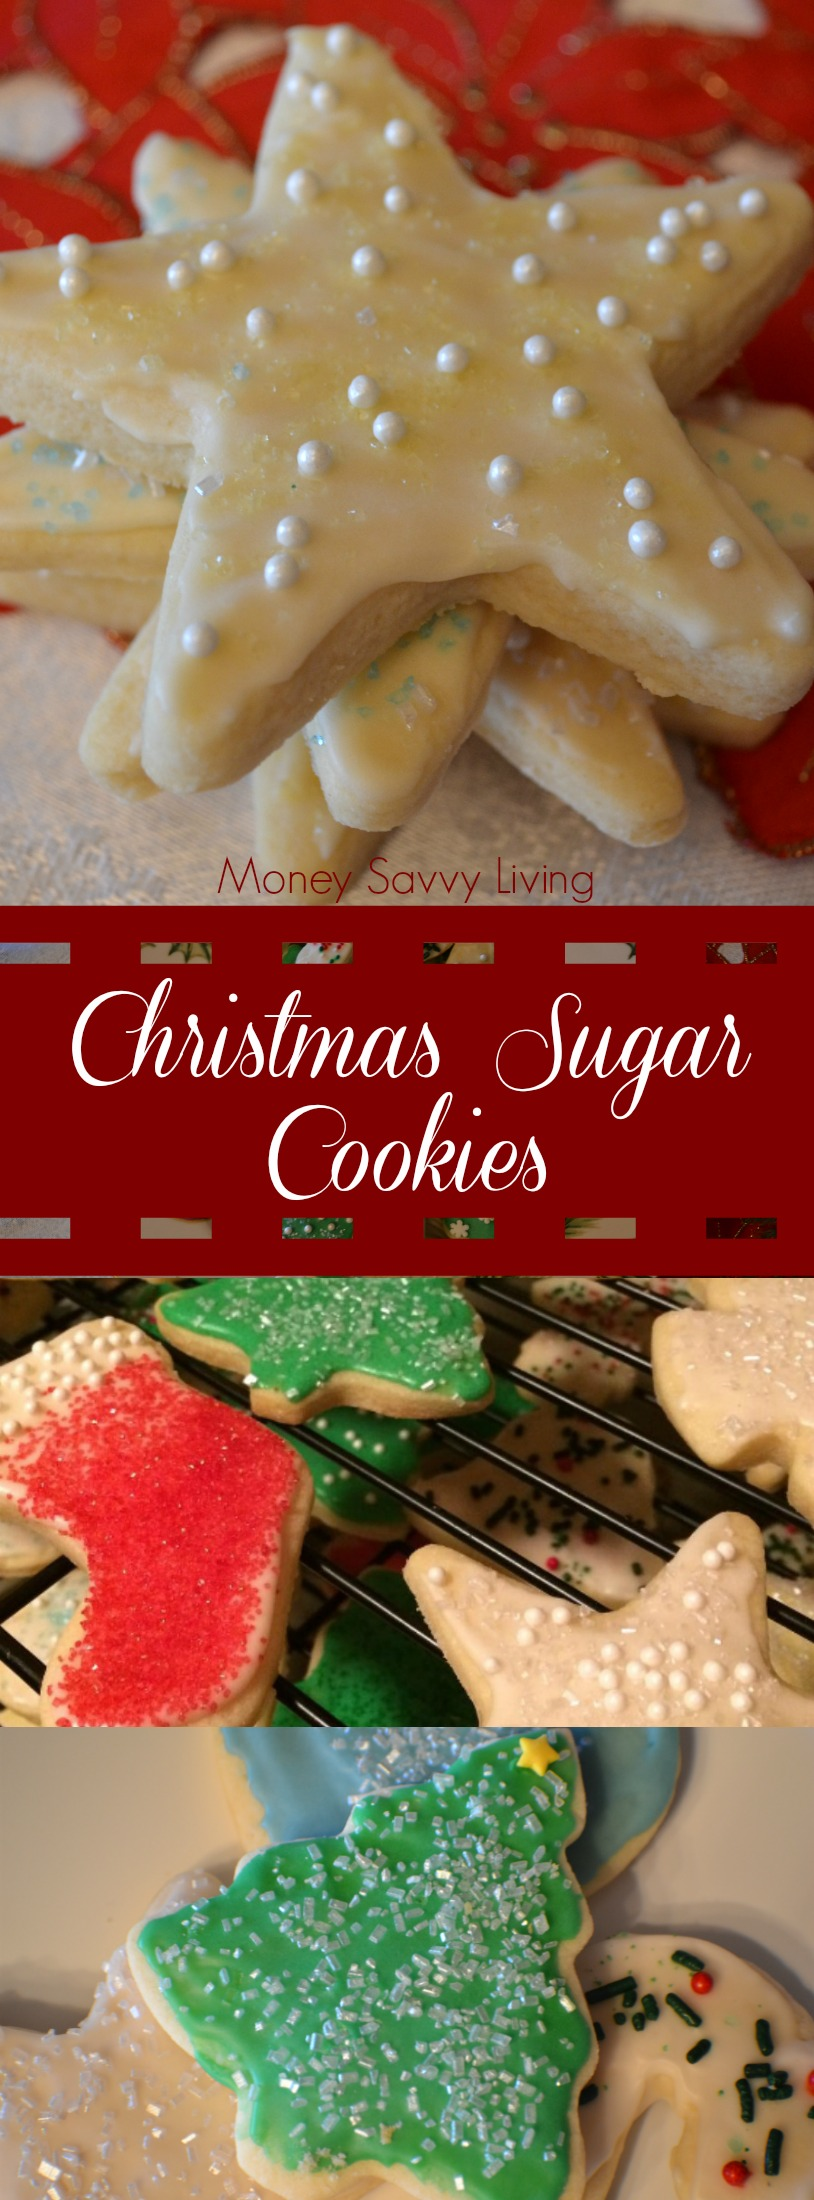 Best Ever Christmas Sugar Cookies | Money Savvy Living